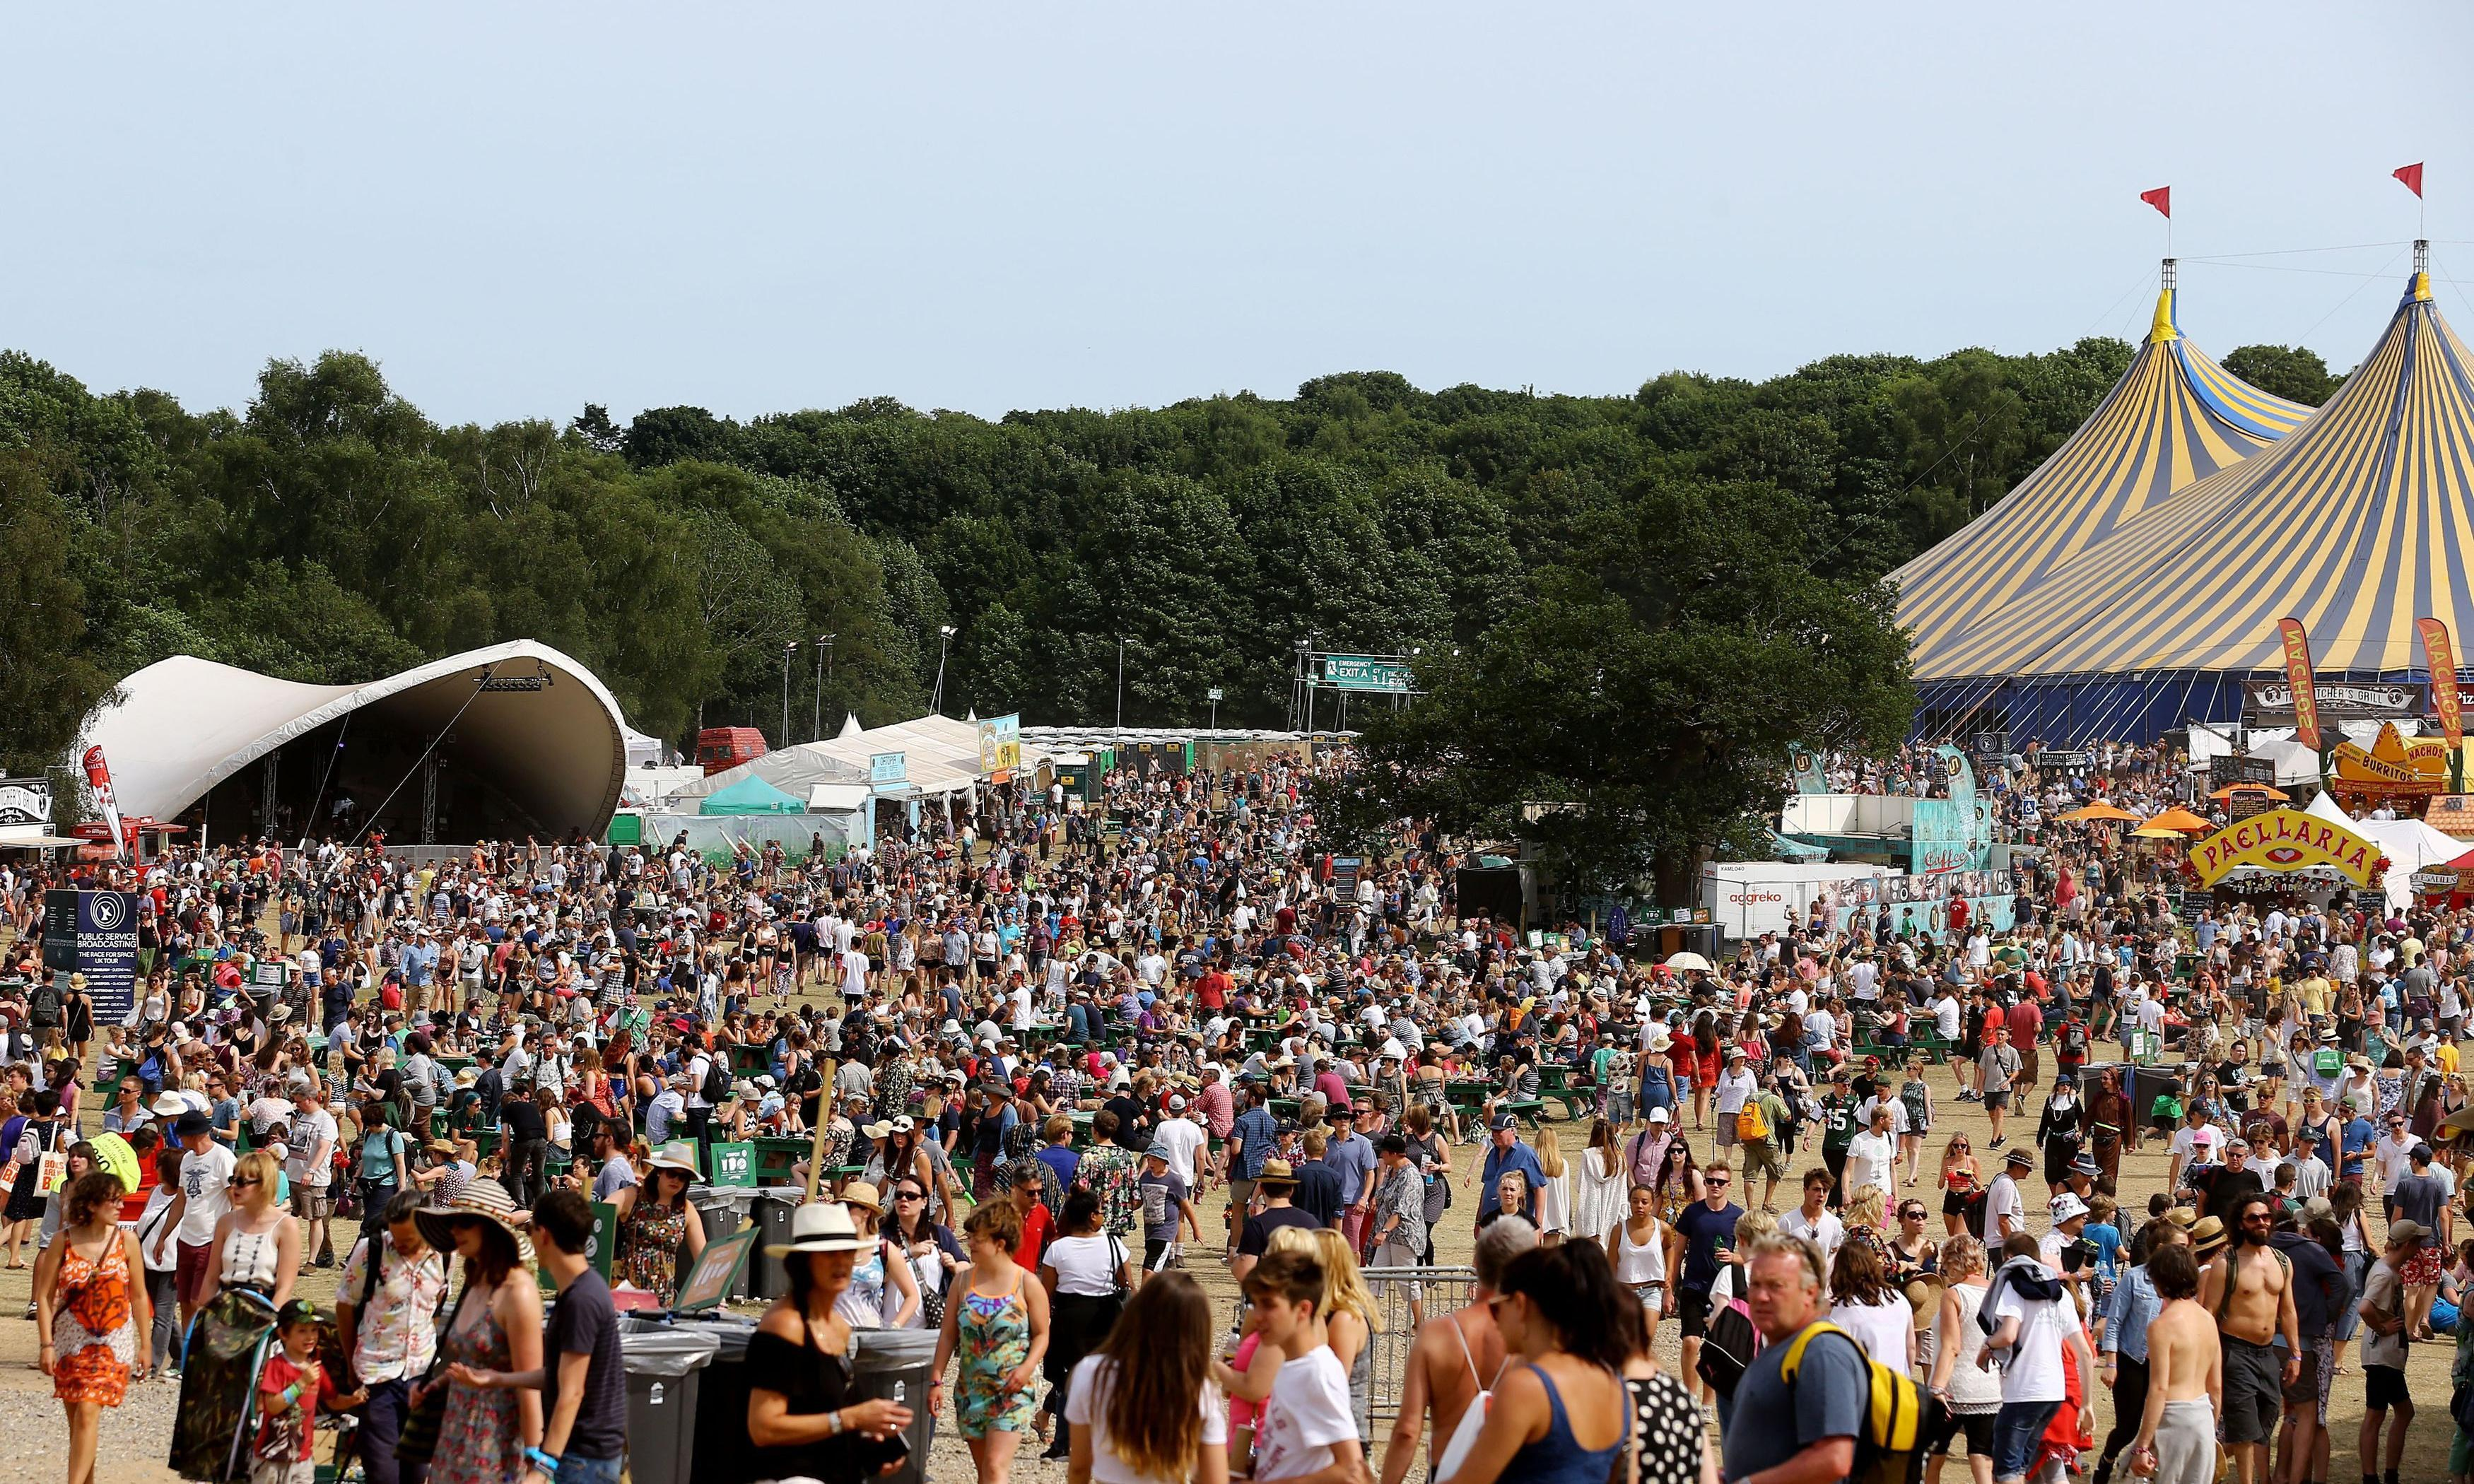 Police investigate serious sexual assault at Latitude festival